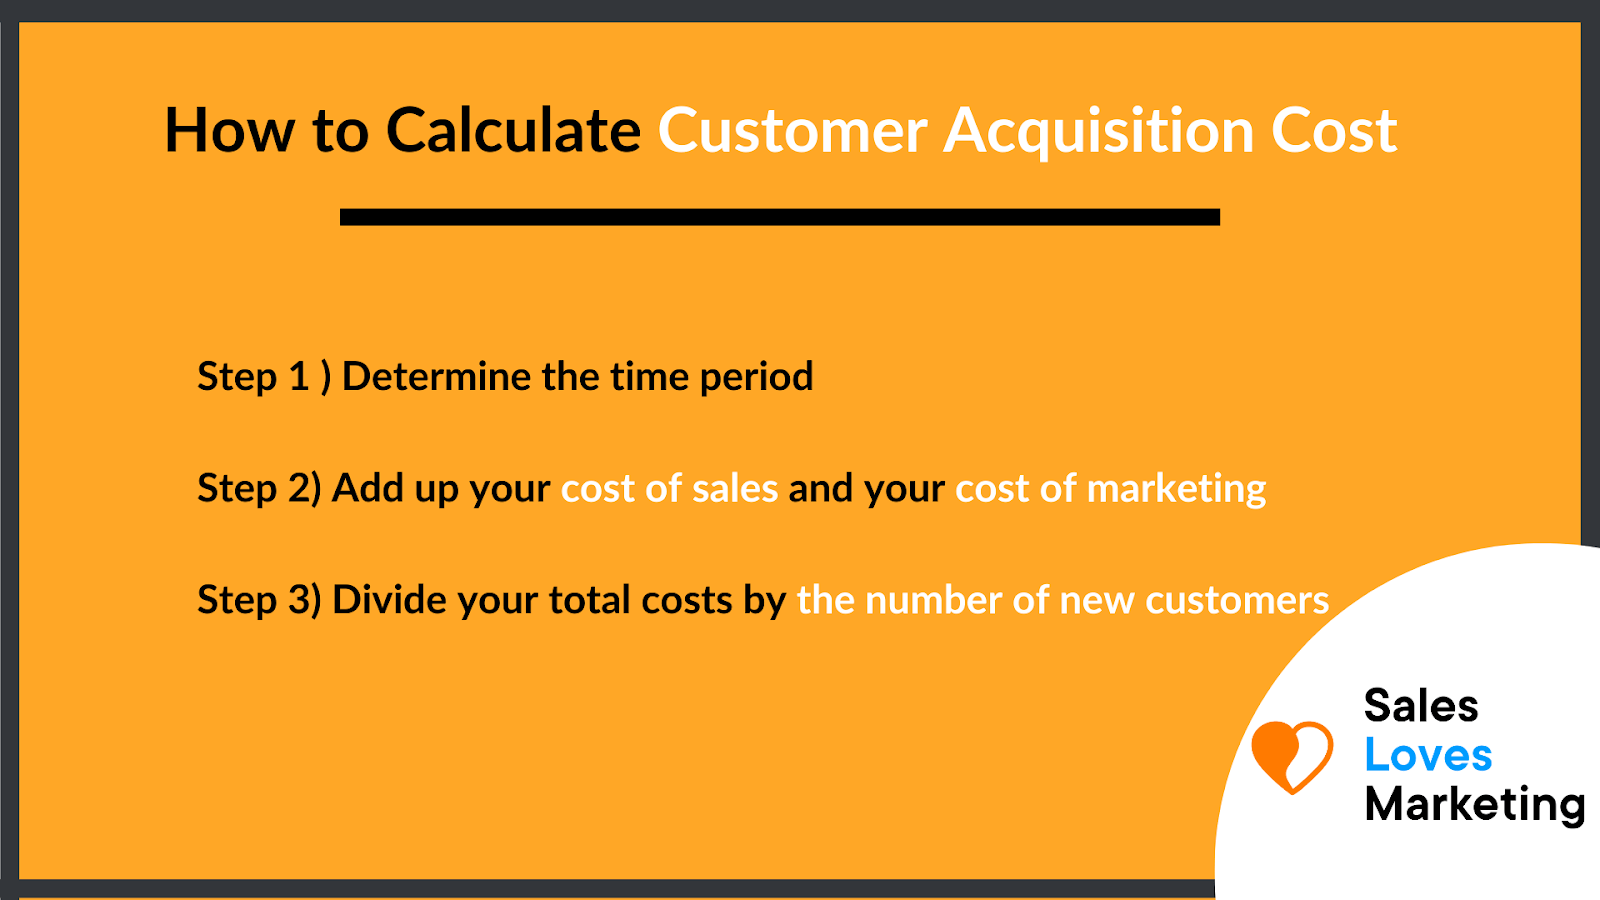 How to calculate cac explained in three easy steps